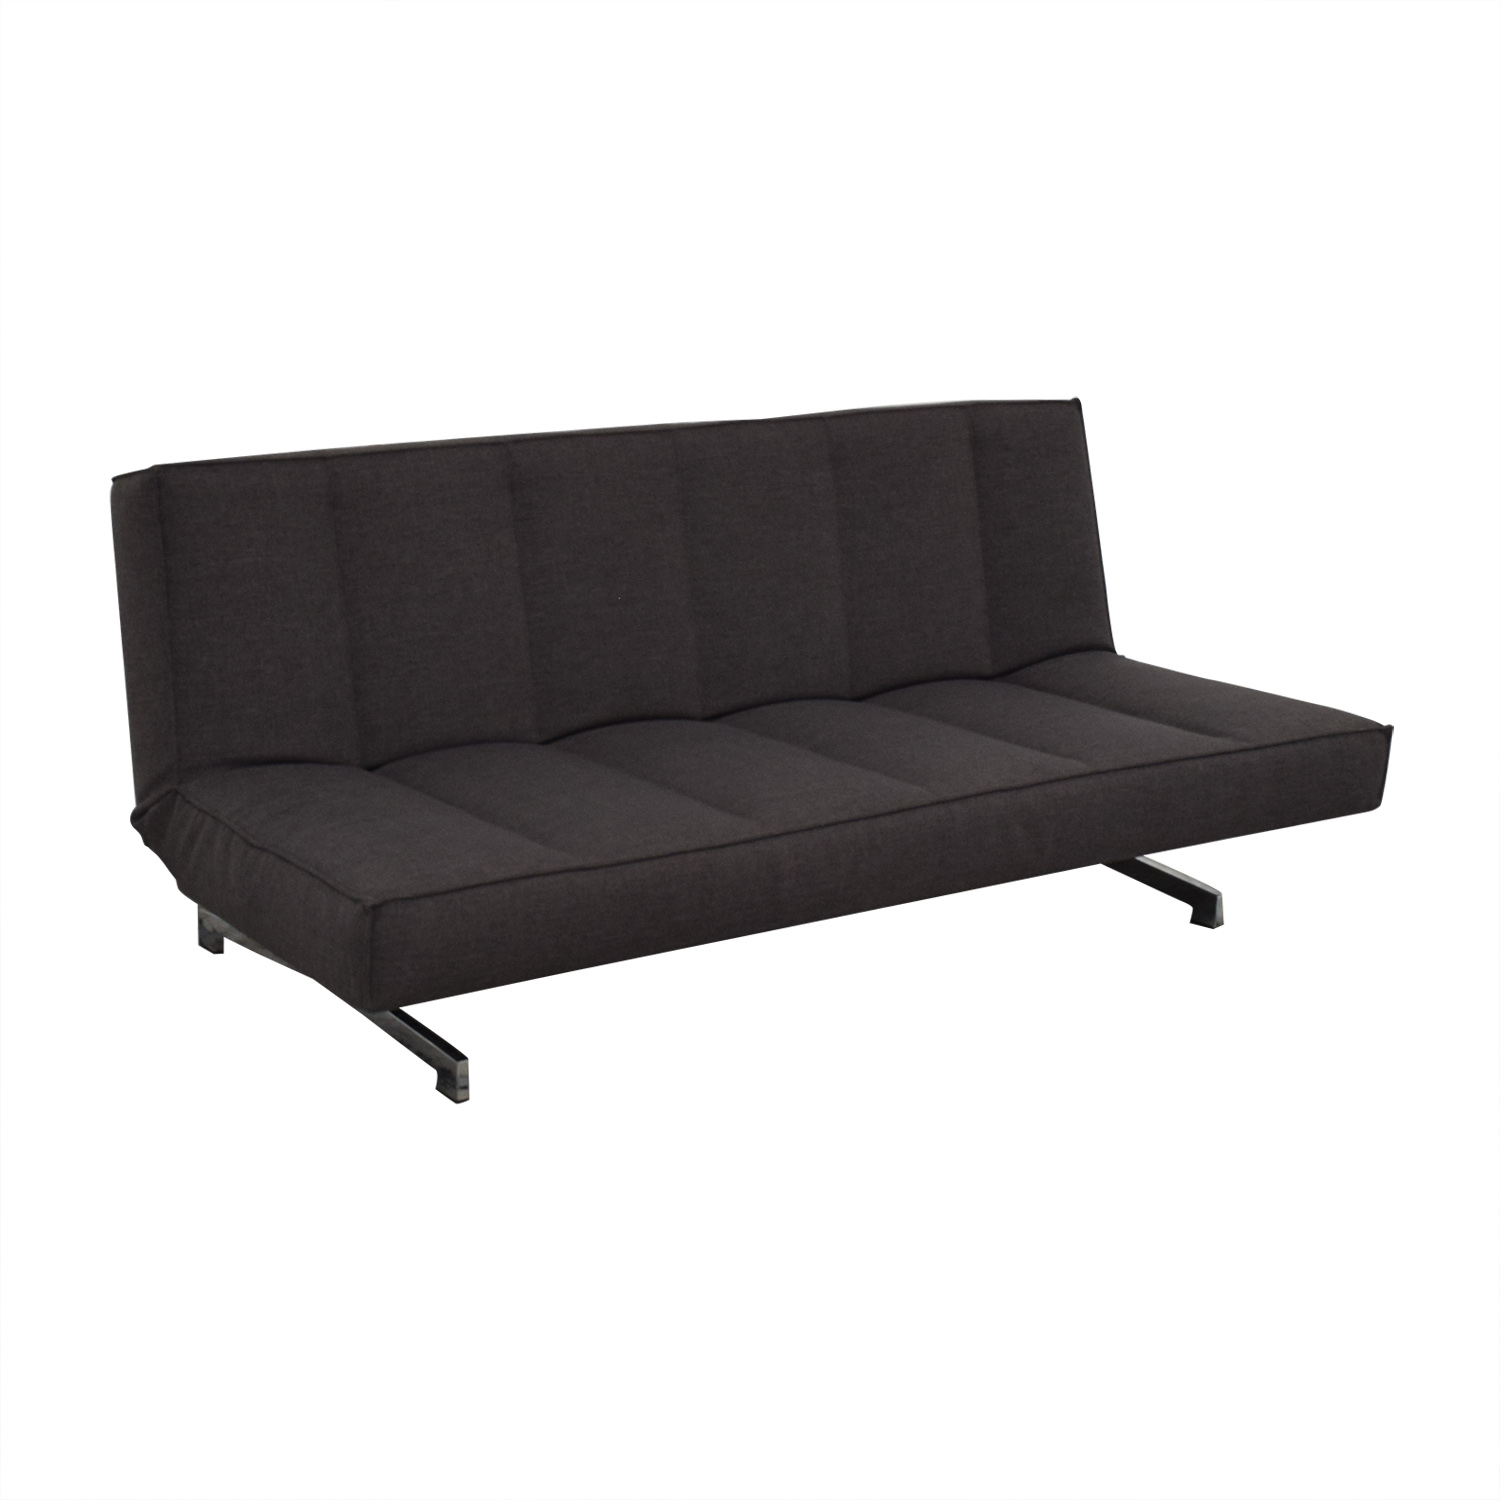 CB2 CB2 Flex Gravel Convertible Sofa price